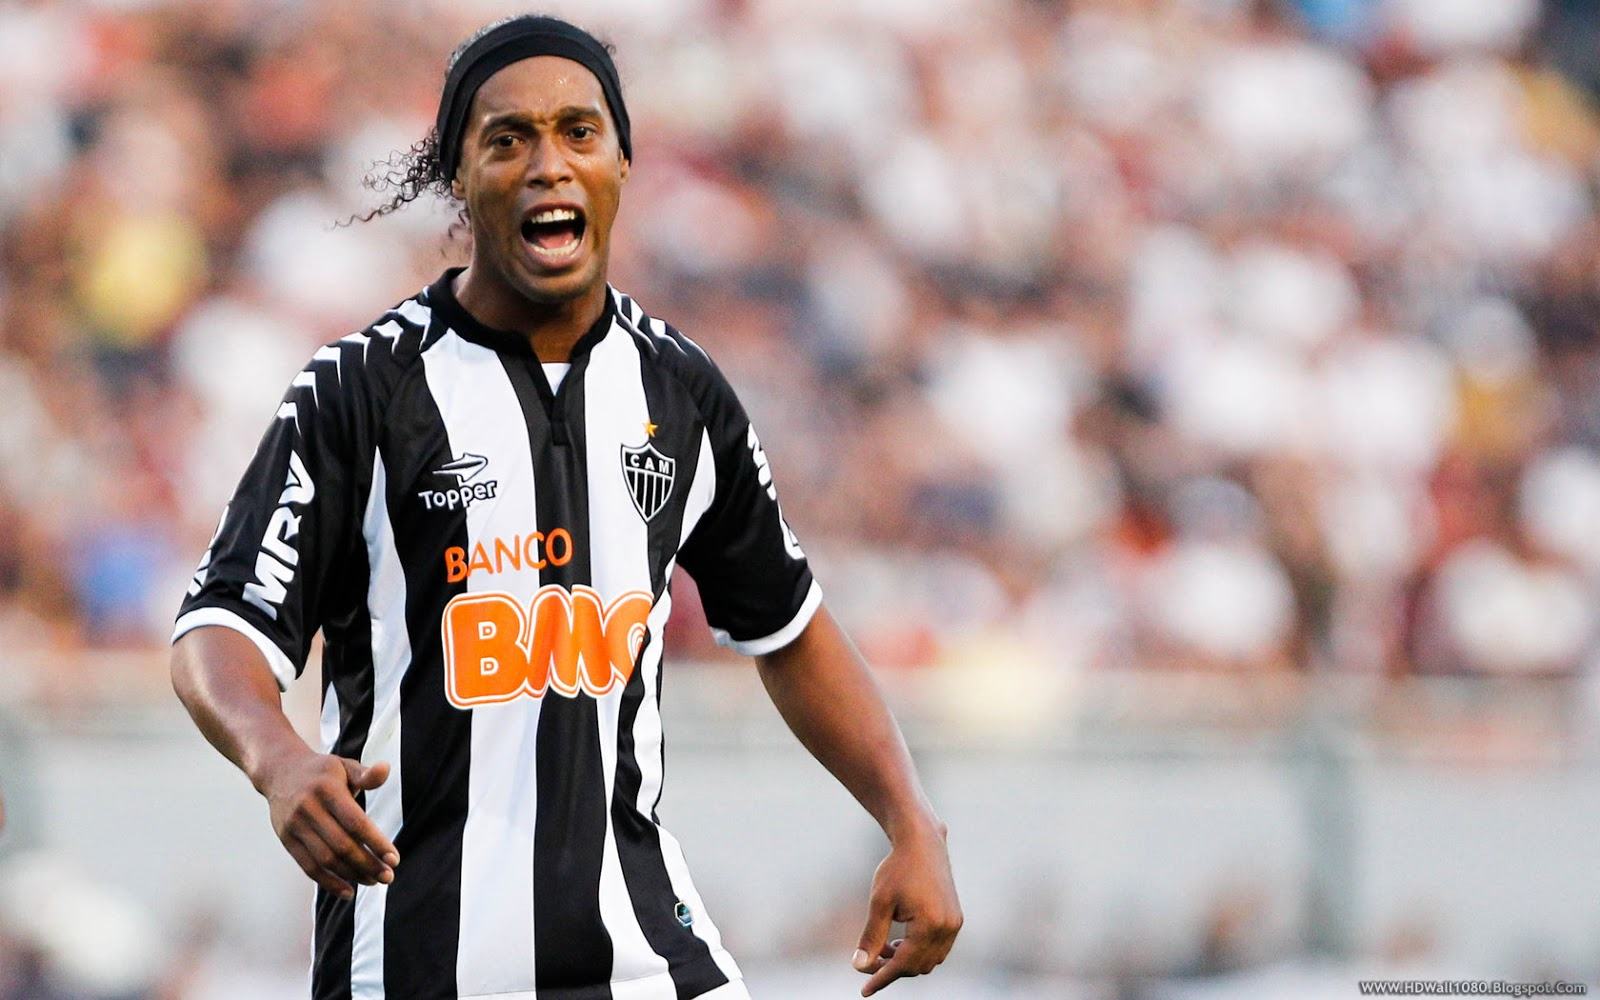 Who Does Ronaldinho Play For